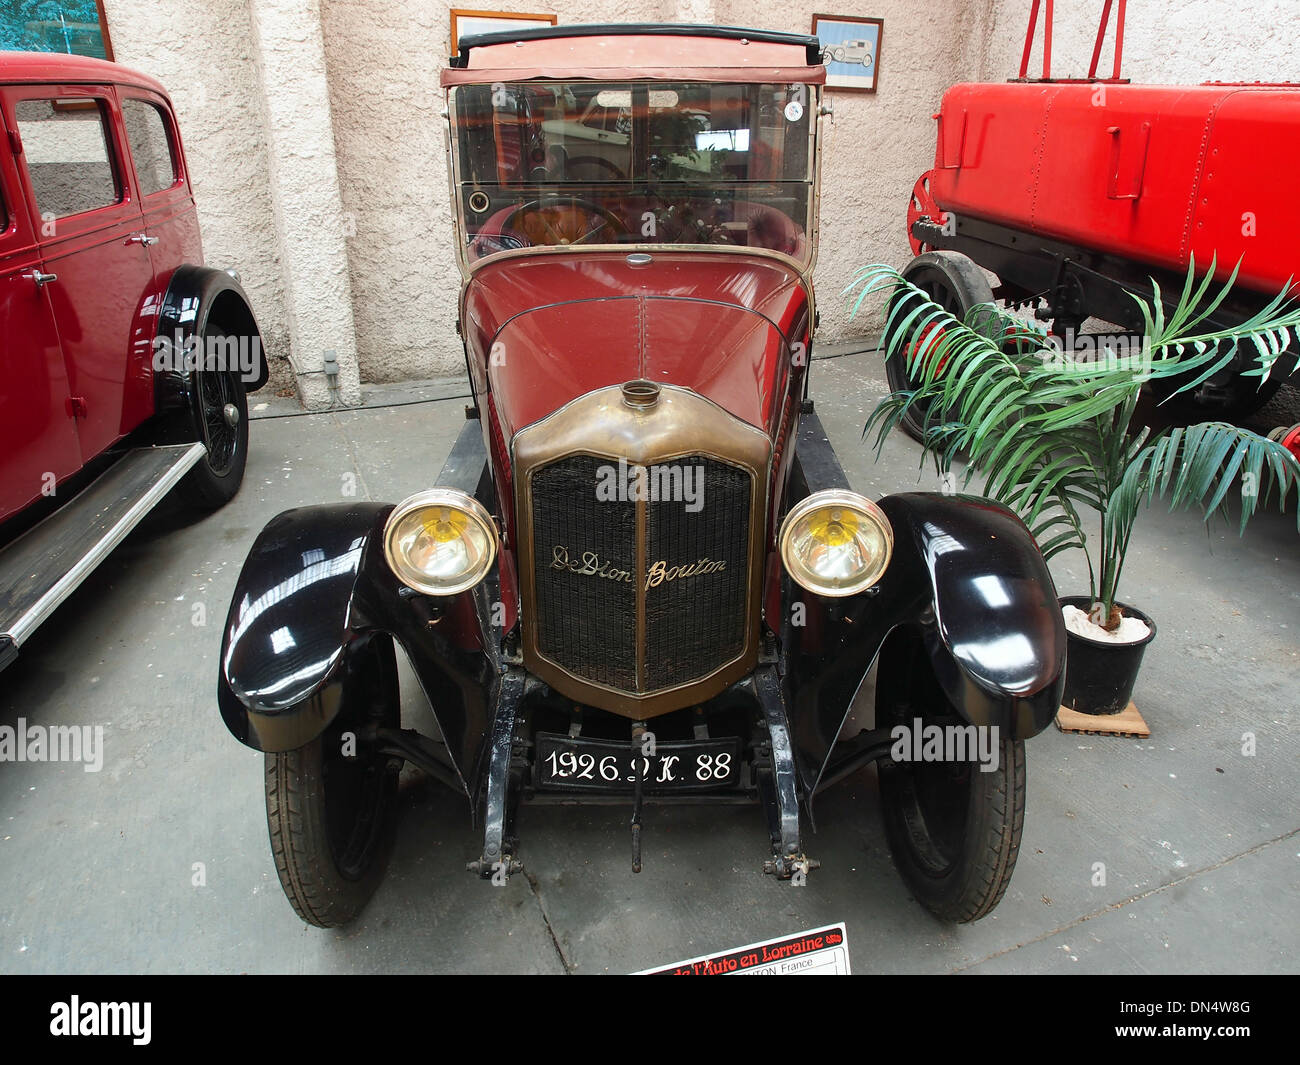 1926 De Dion-Bouton Type IW, 4 cylinders, 1800 cm3, 43hp, - Stock Image